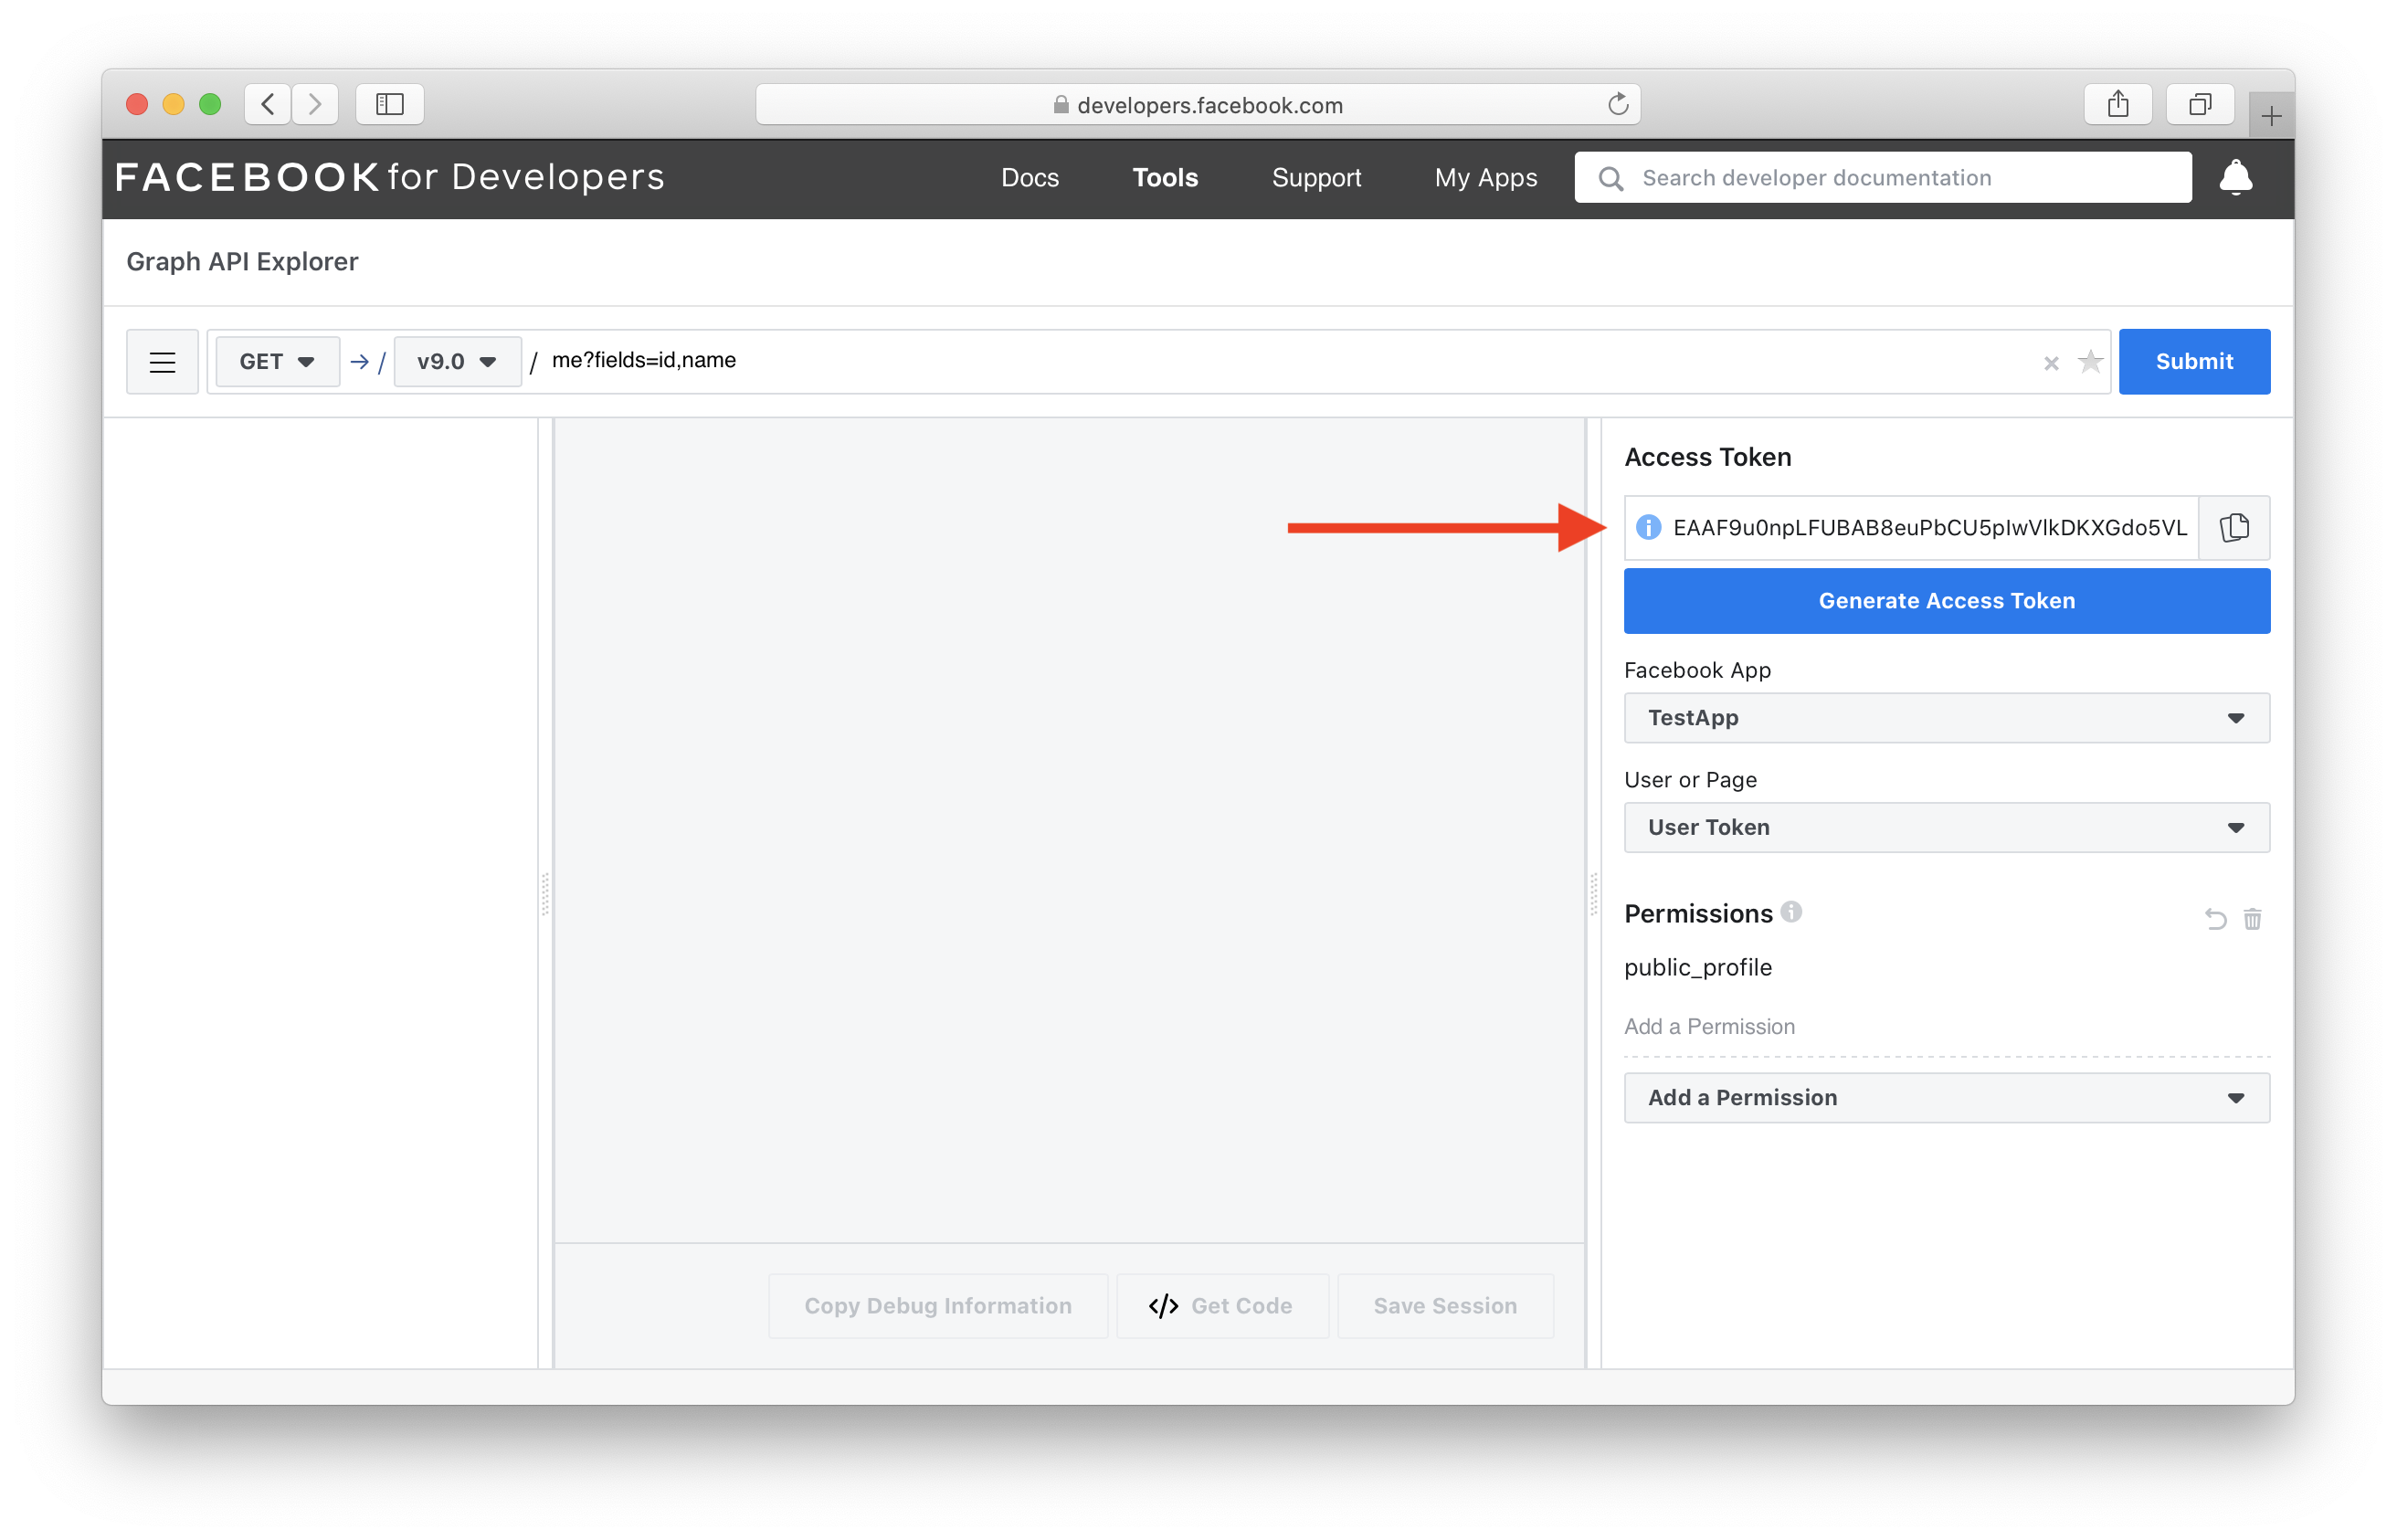 Generate access token for users logged in with Facebook